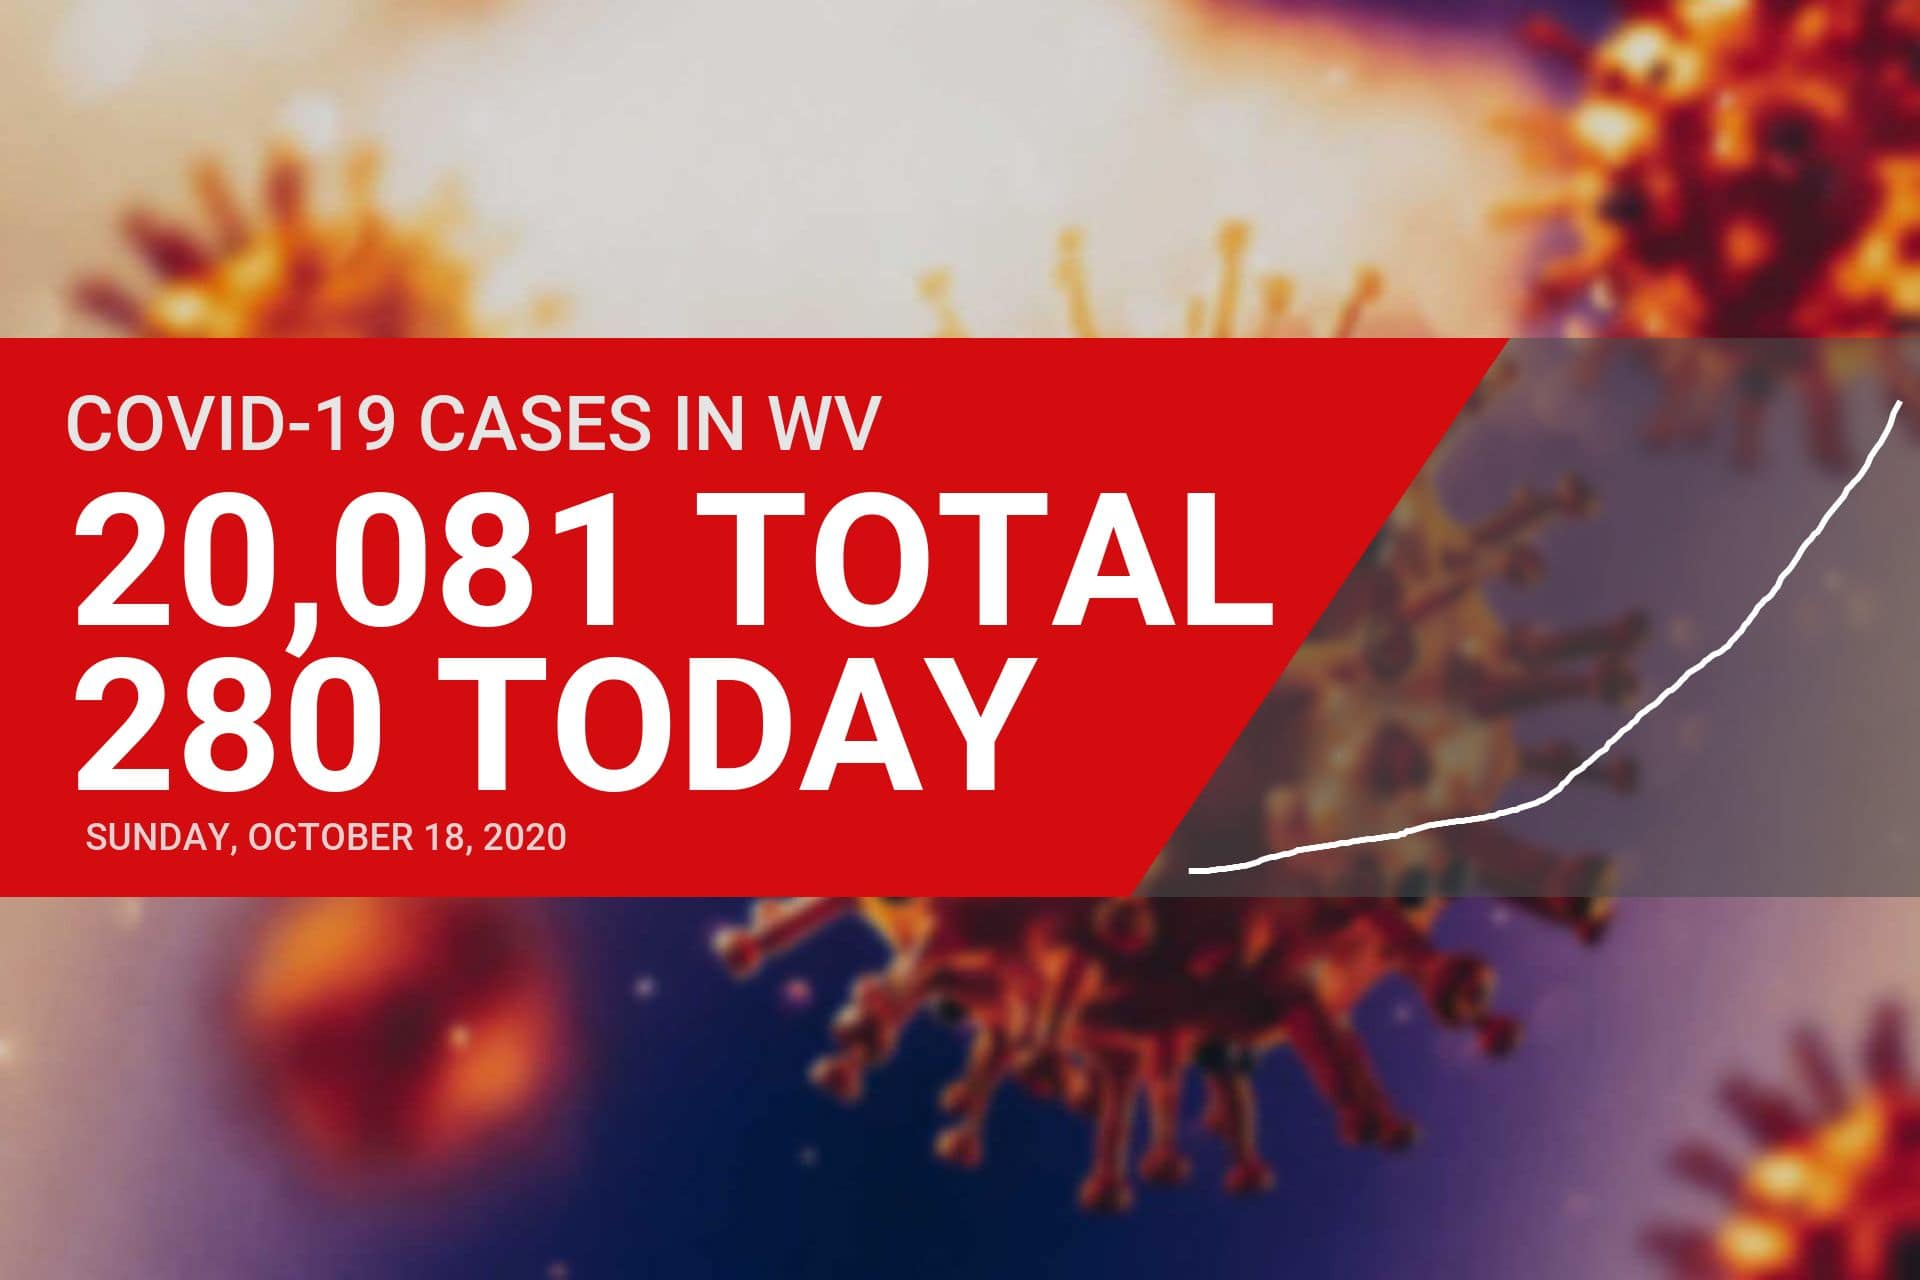 Six new COVID-19 cases reported in Upshur County on Sunday, state crosses 20,000 mark